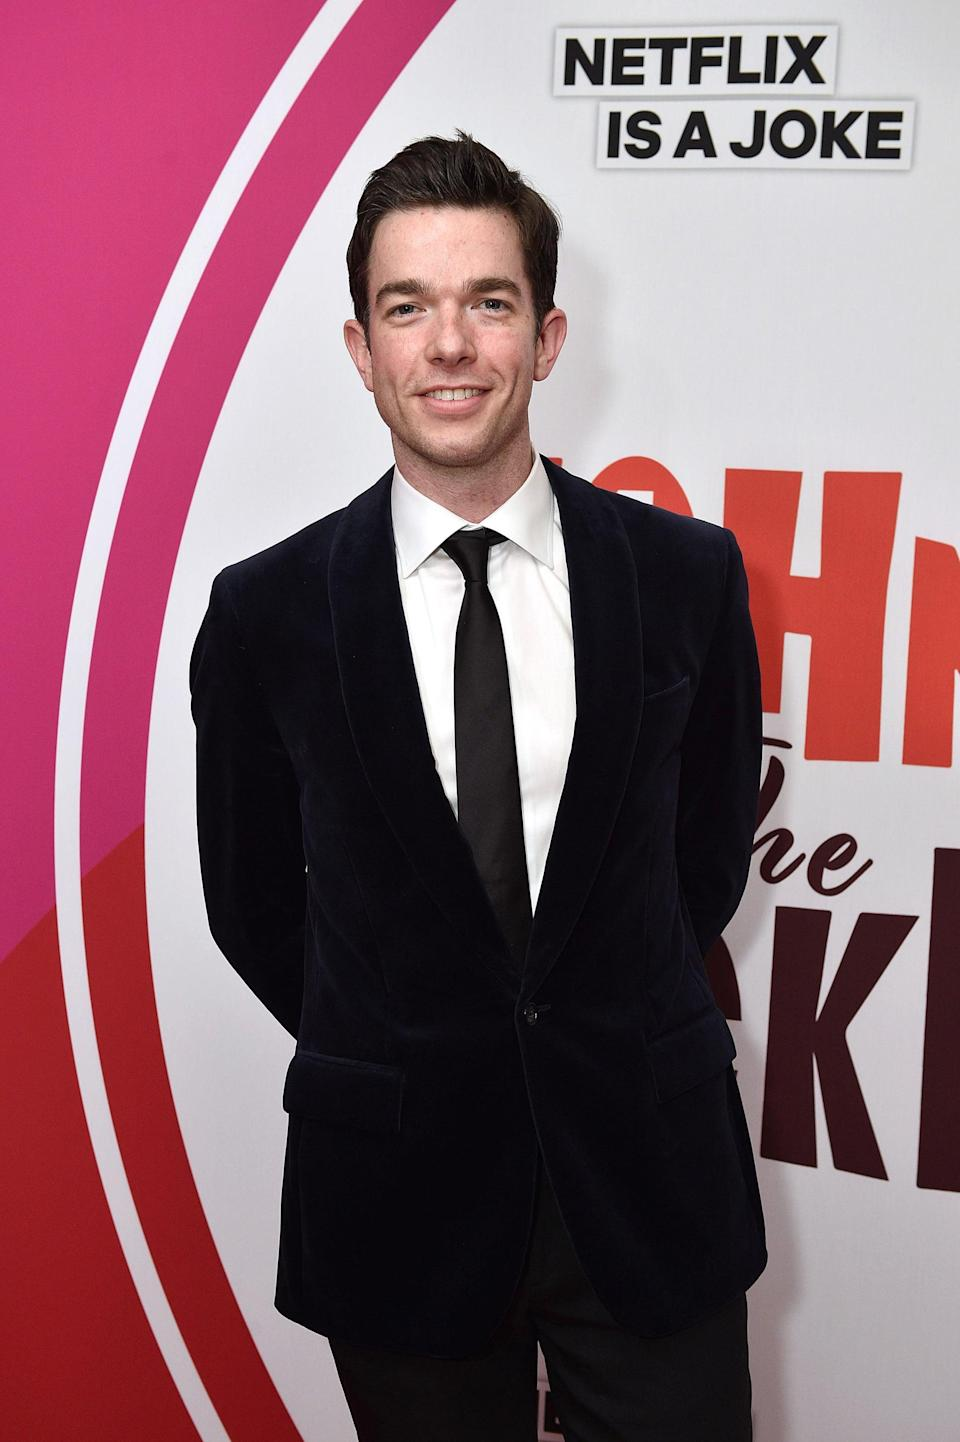 """<p>Olivia is now reportedly dating the comedian. News about their blossoming relationship broke in May 2021, just days after <a href=""""https://www.popsugar.com/celebrity/john-mulaney-and-annamarie-tendler-break-up-48314497"""" class=""""link rapid-noclick-resp"""" rel=""""nofollow noopener"""" target=""""_blank"""" data-ylk=""""slk:John and wife Annamarie Tendler announced their separation"""">John and wife Annamarie Tendler announced their separation</a>. According to <b>People</b>, <a href=""""https://people.com/tv/john-mulaney-olivia-munn-dating/"""" class=""""link rapid-noclick-resp"""" rel=""""nofollow noopener"""" target=""""_blank"""" data-ylk=""""slk:their relationship is still very new"""">their relationship is still very new</a> and they met at a church in LA. The two have yet to publicly confirm their romance.</p>"""